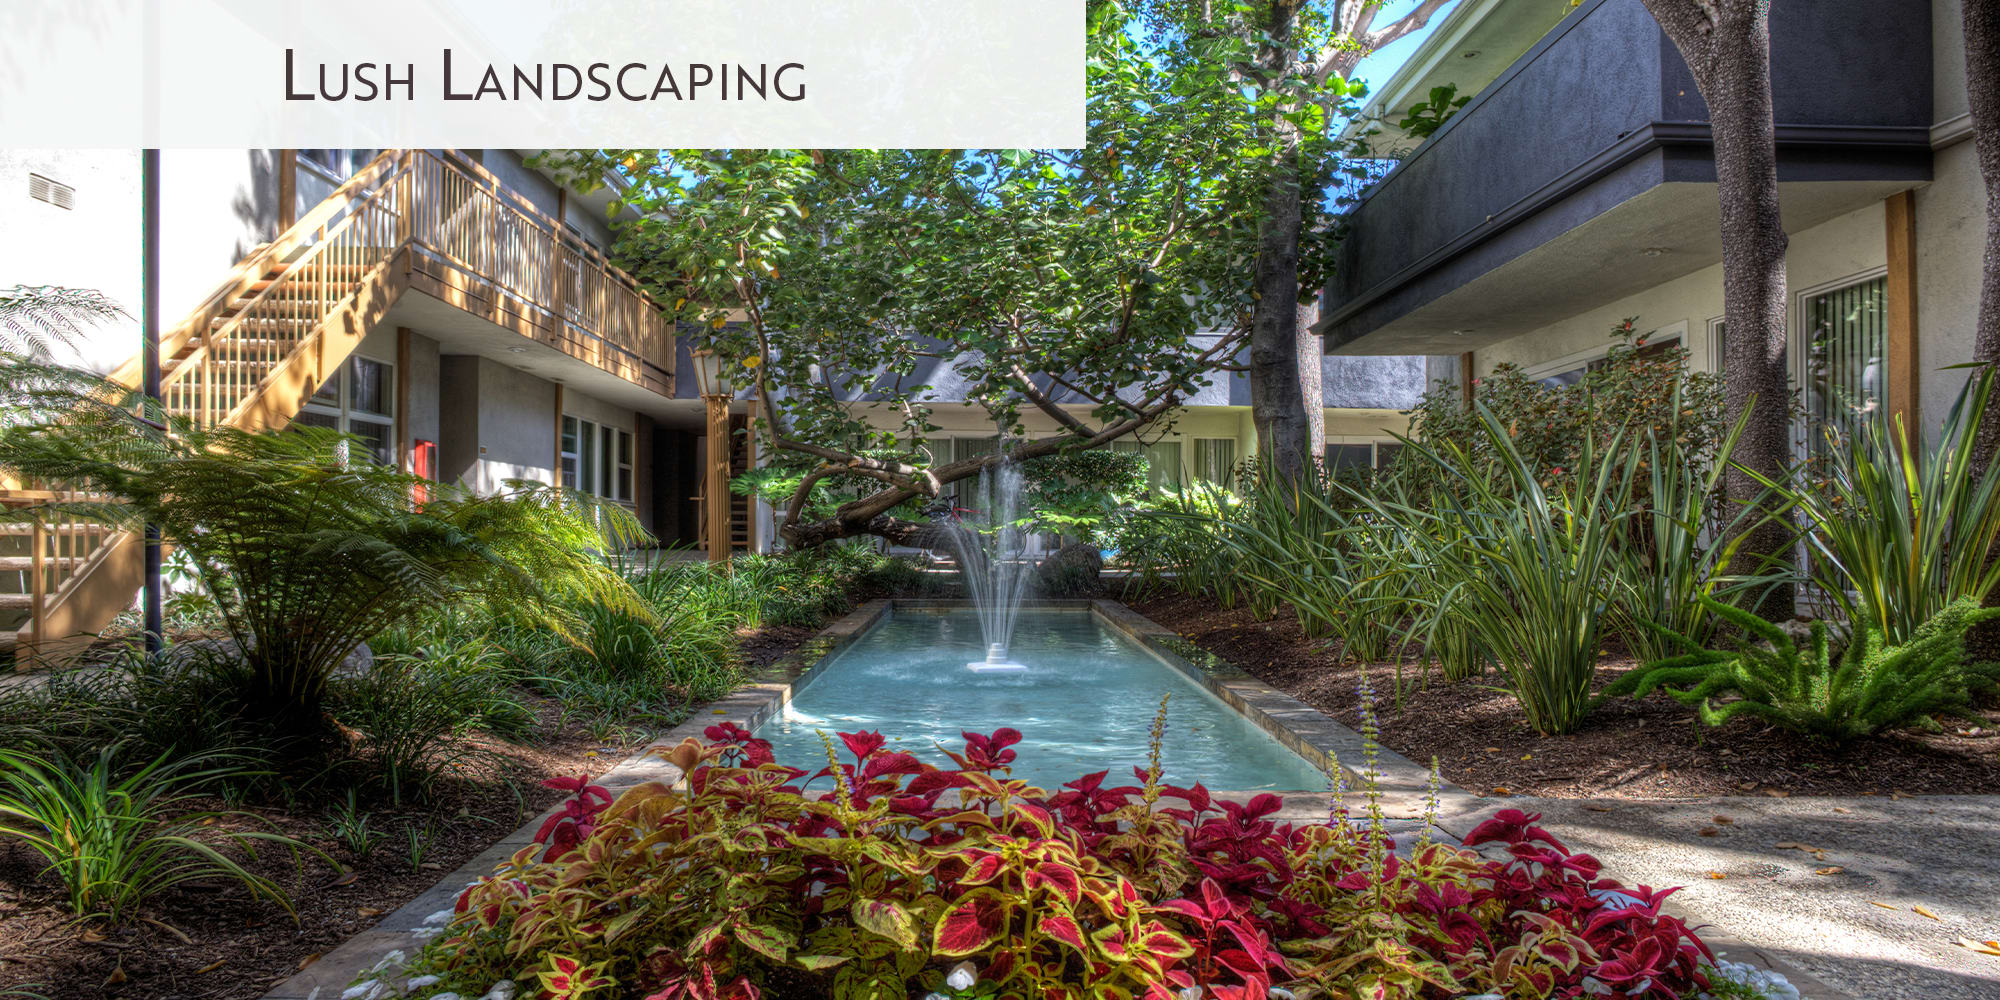 Lush landscaping at West Park Village in Los Angeles, California